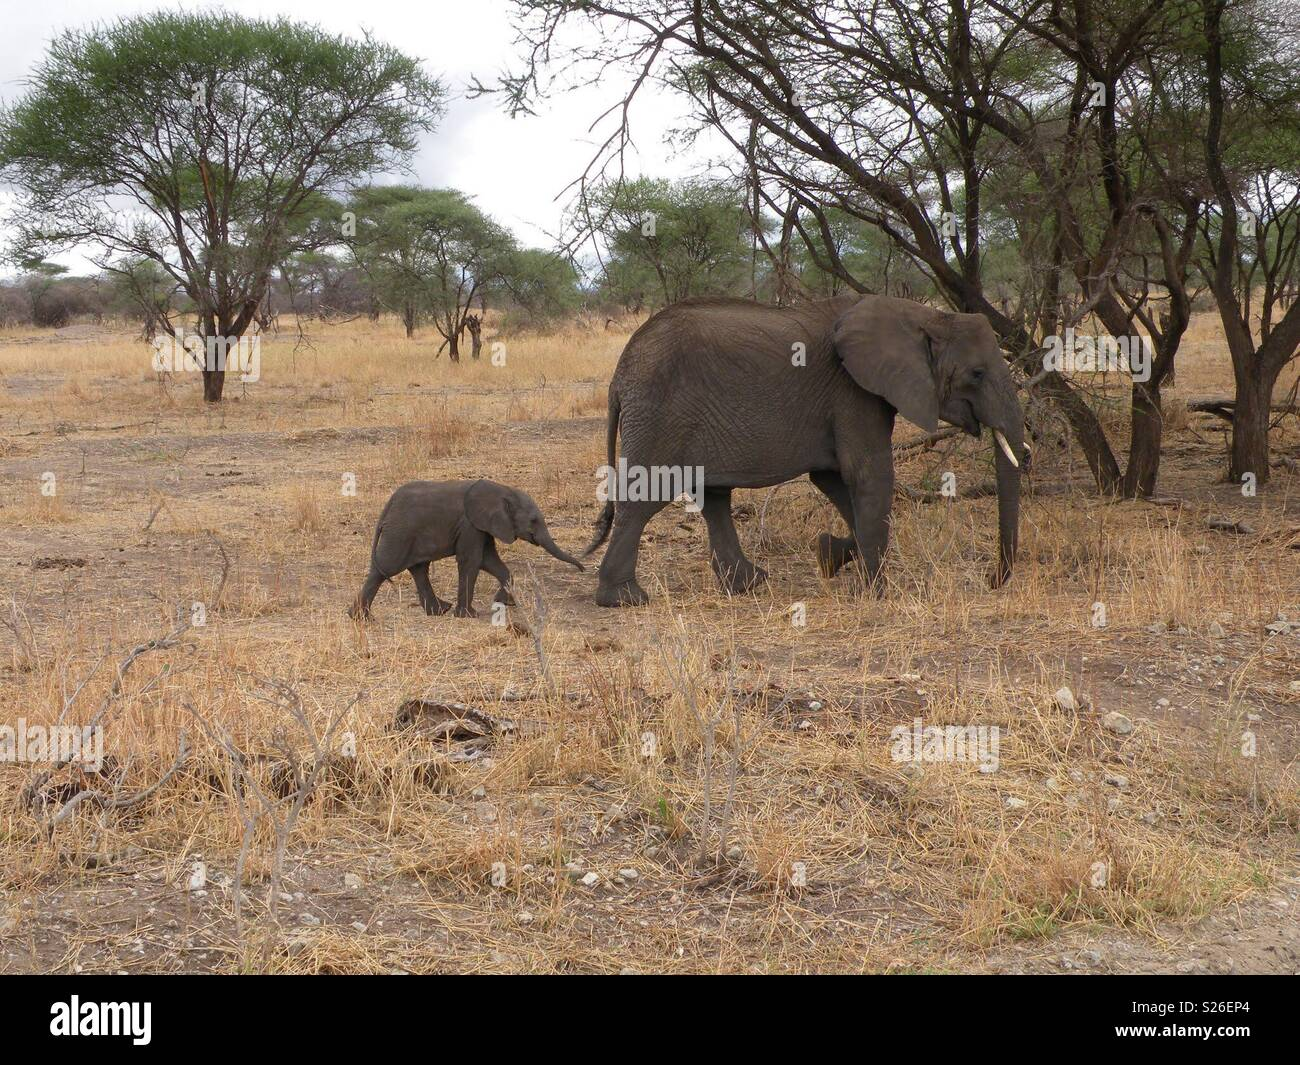 Mother and baby elephant in the wild Stock Photo